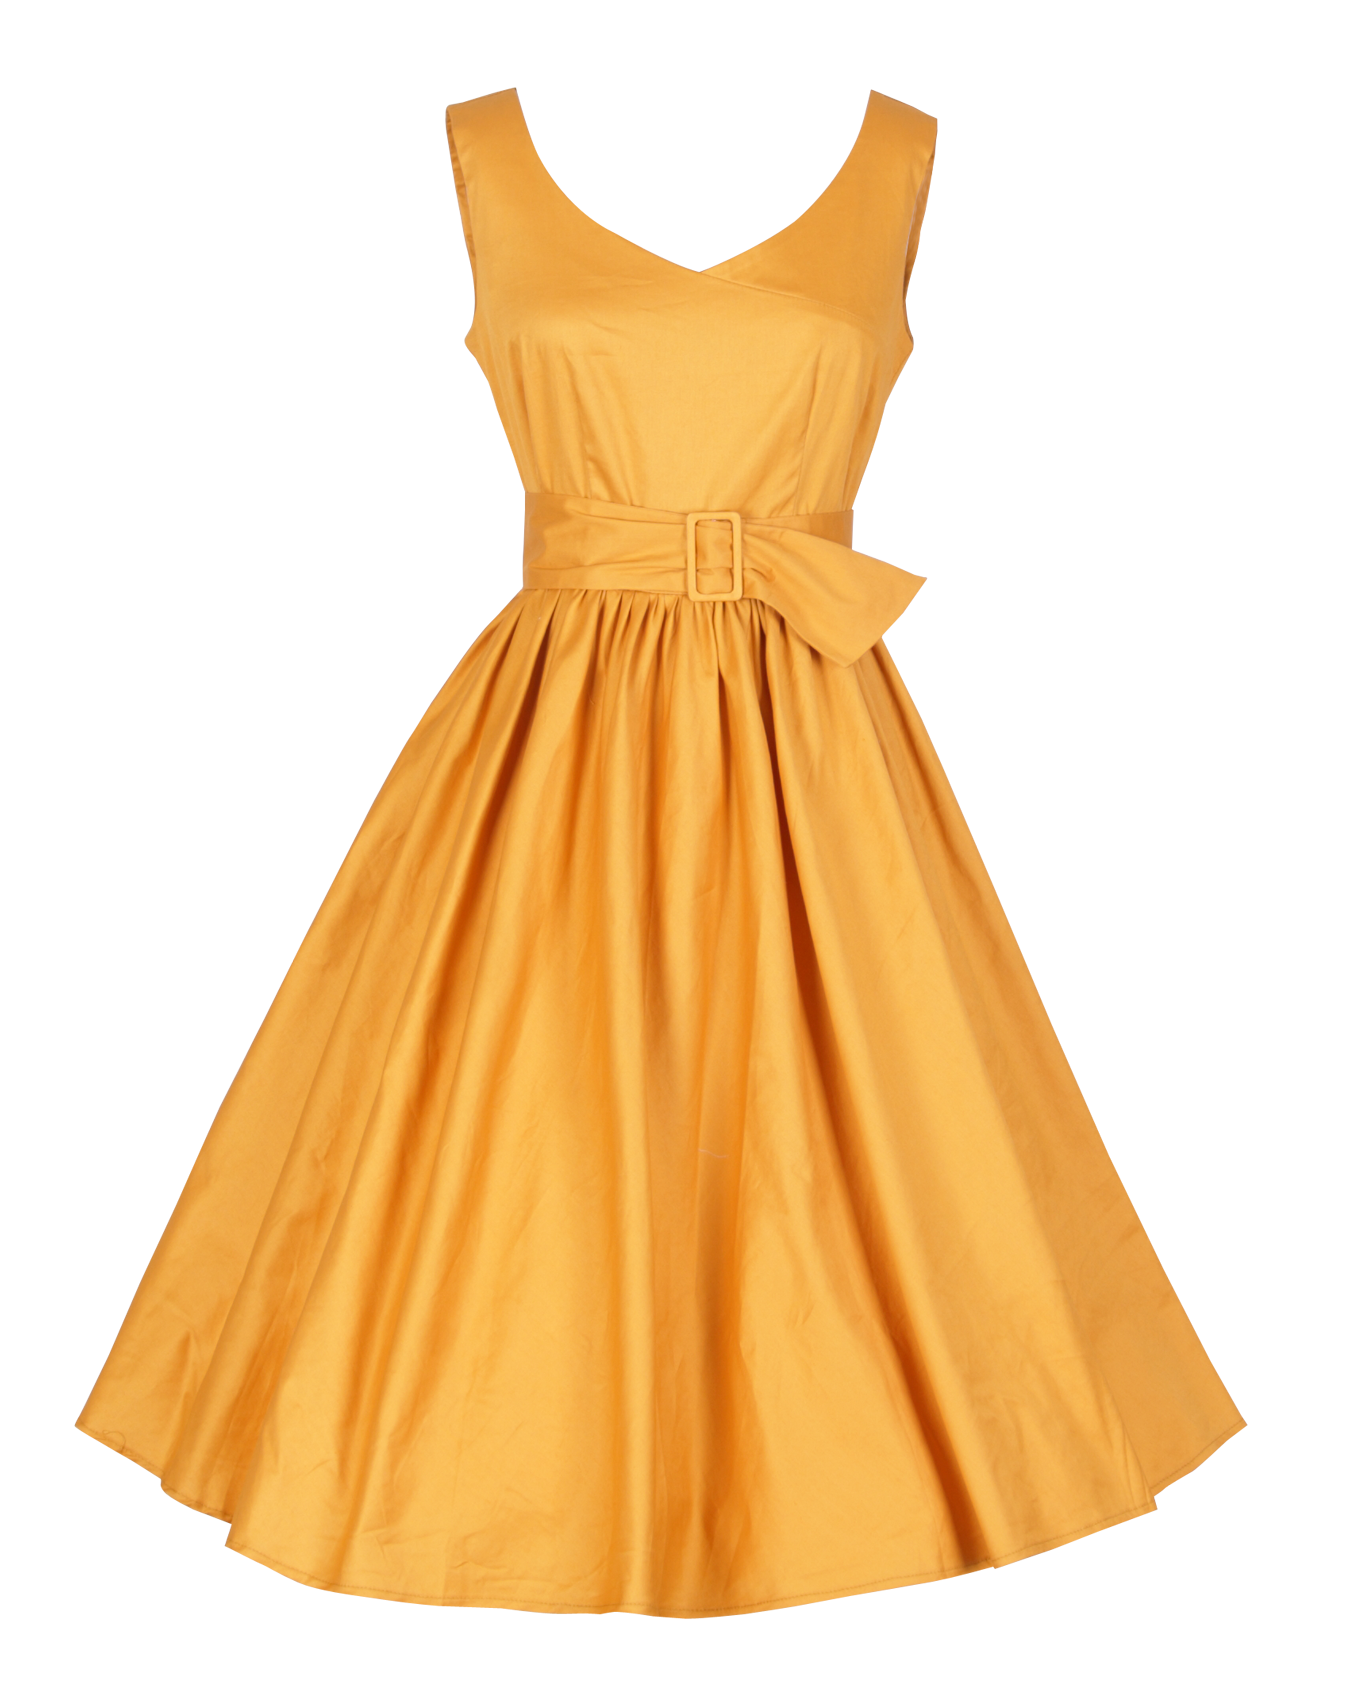 Dress Png Images Free Download